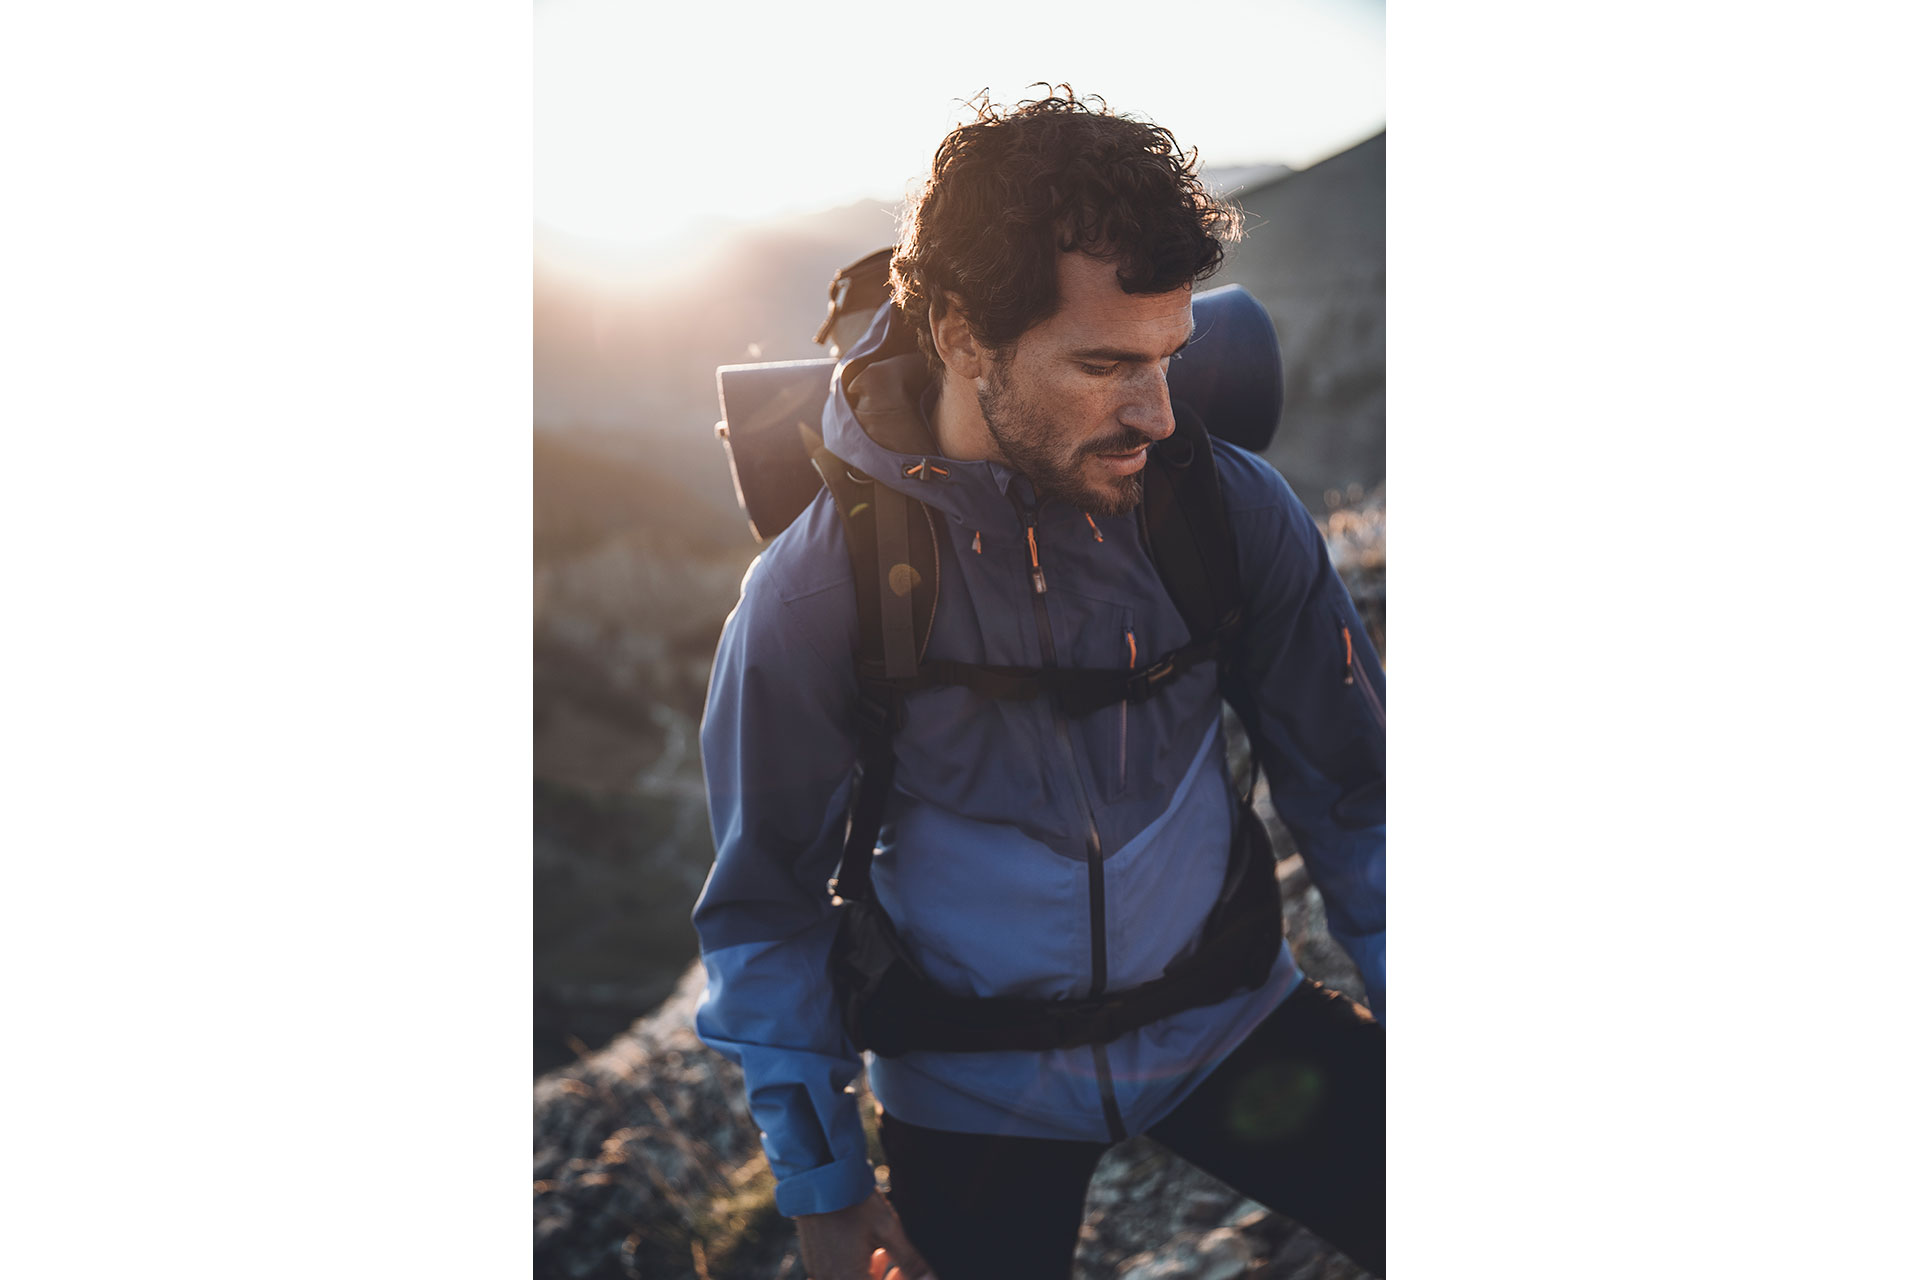 sports photography outdoor trekking hiking mountains alps united kingdom london